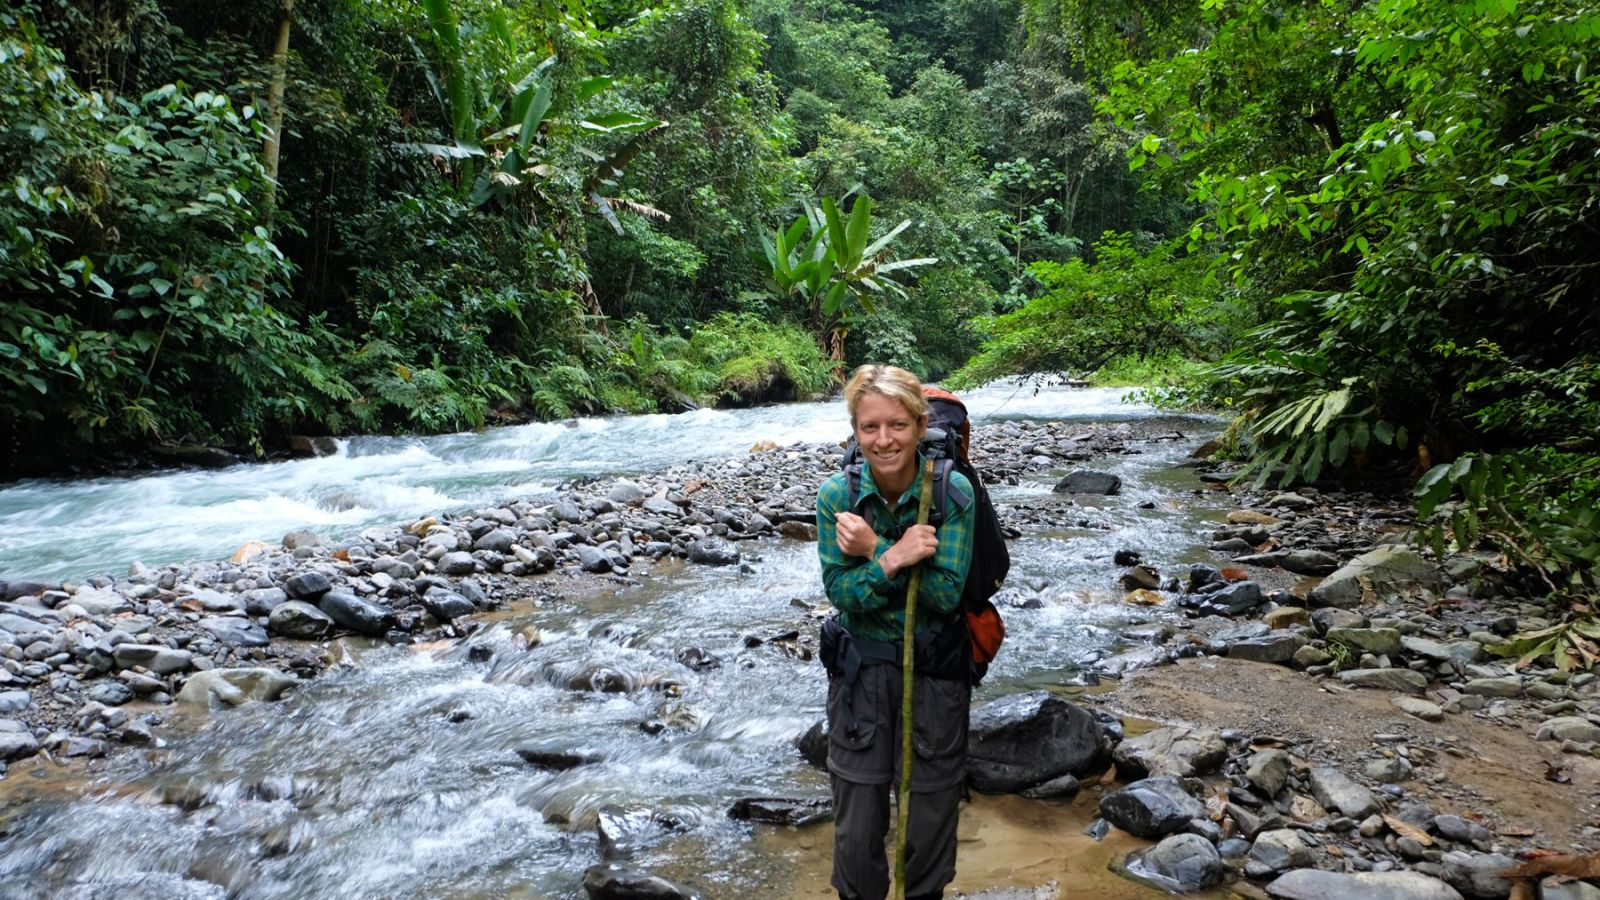 a photo of a hiker standing in a river in gunung leuser national park.